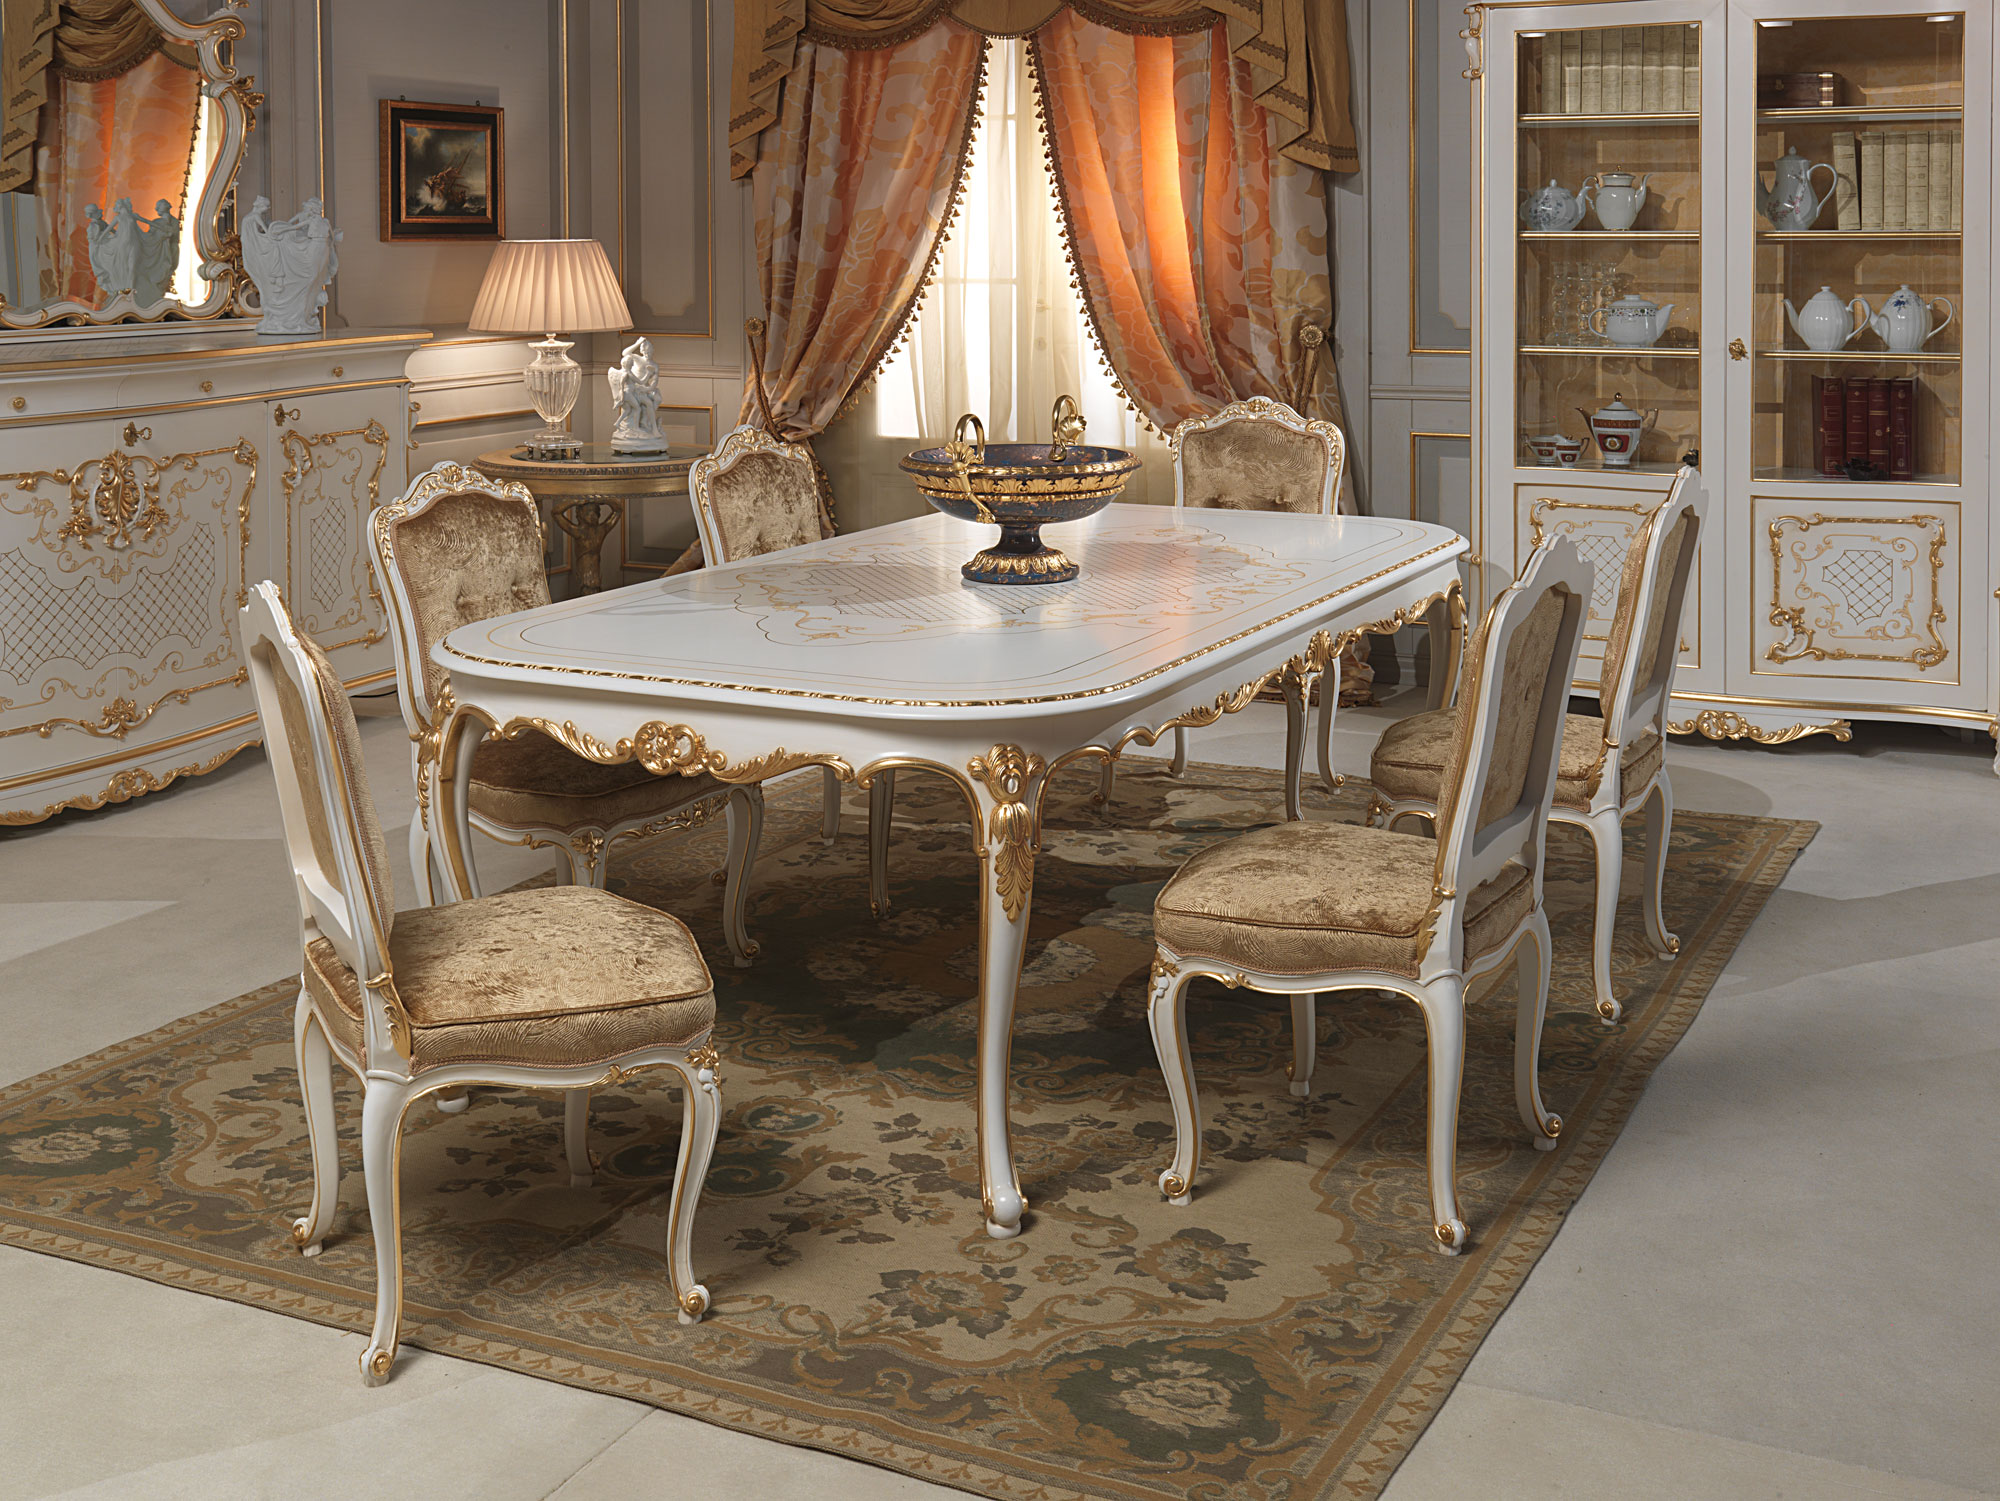 Genial Furniture Classic Room Venice: The Big Table